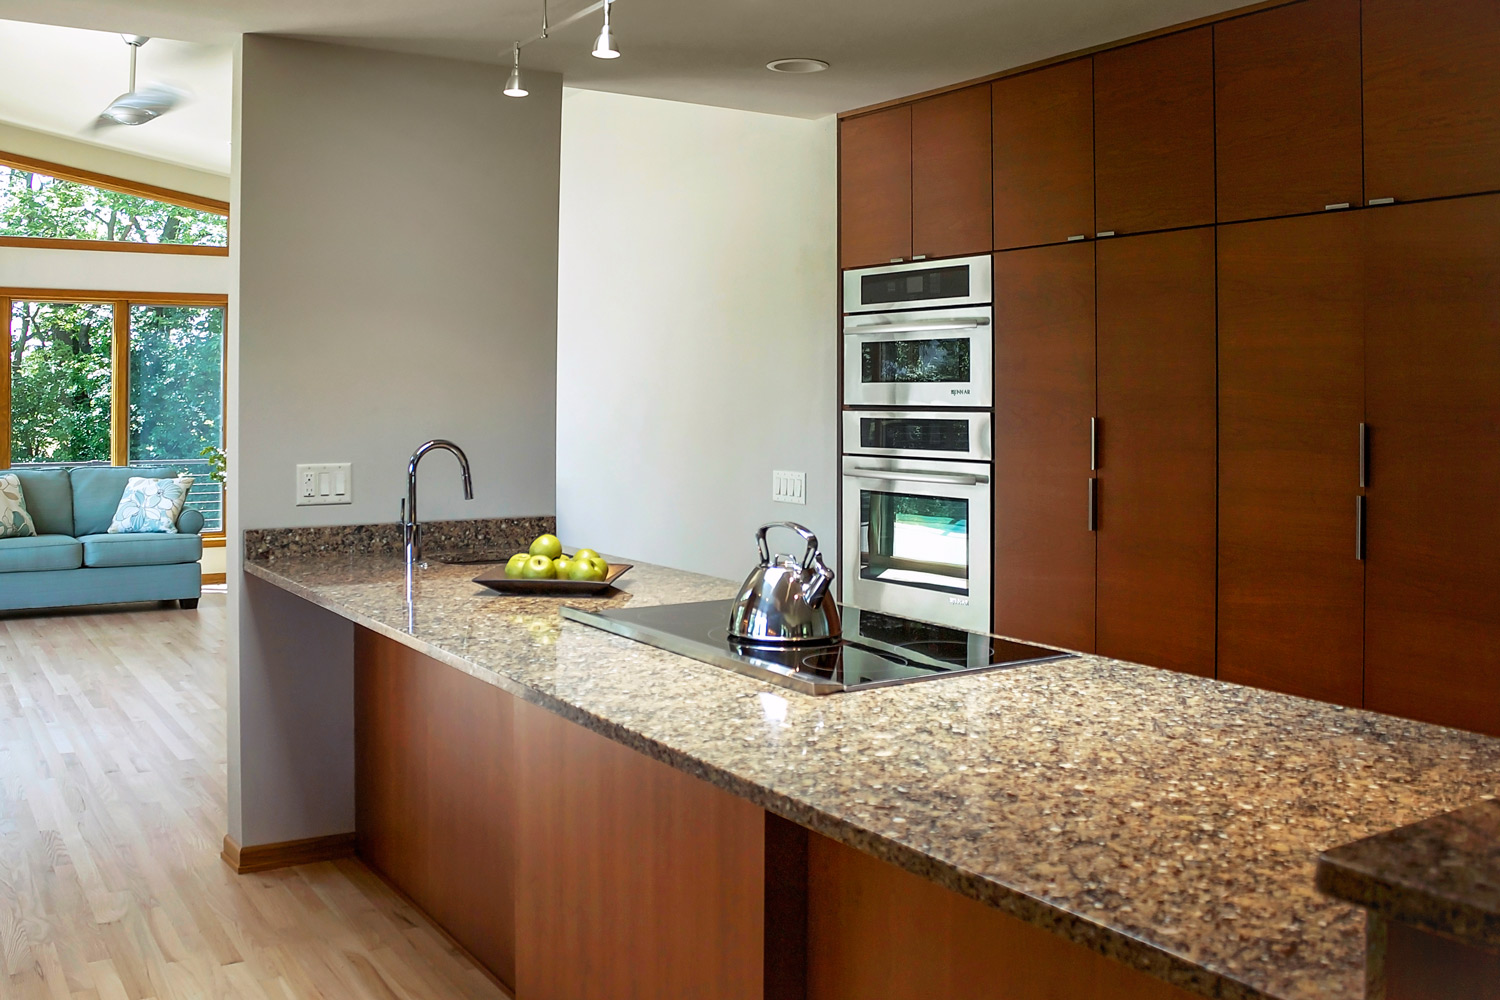 Image of: Kitchen Cabinet Doors Full Overlay Partial Overlay And Inset Degnan Design Build Remodel